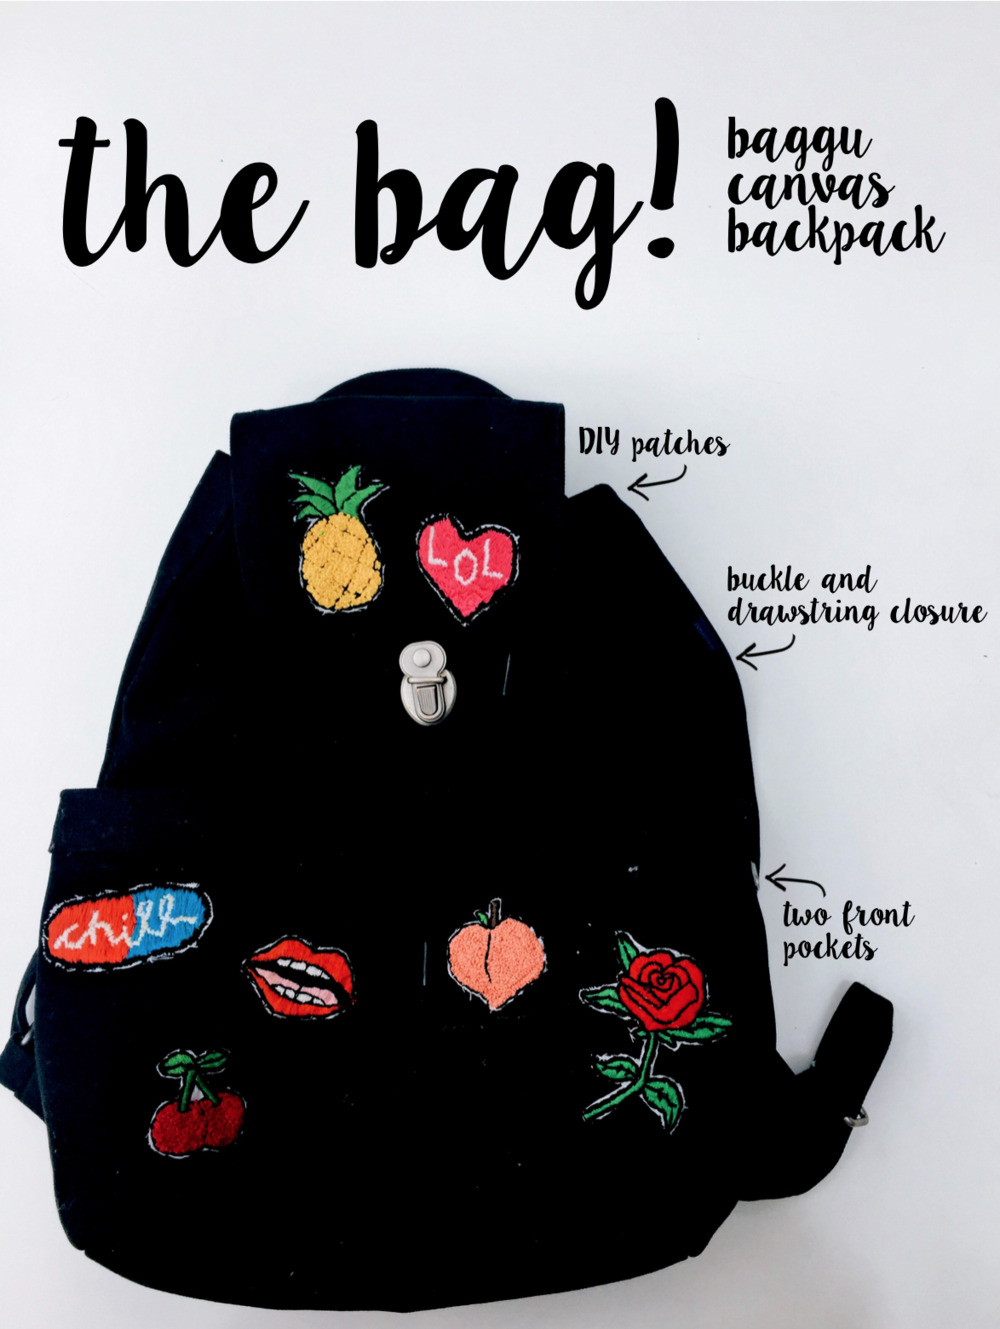 Get it direct from Baggu or also available on Amazon!